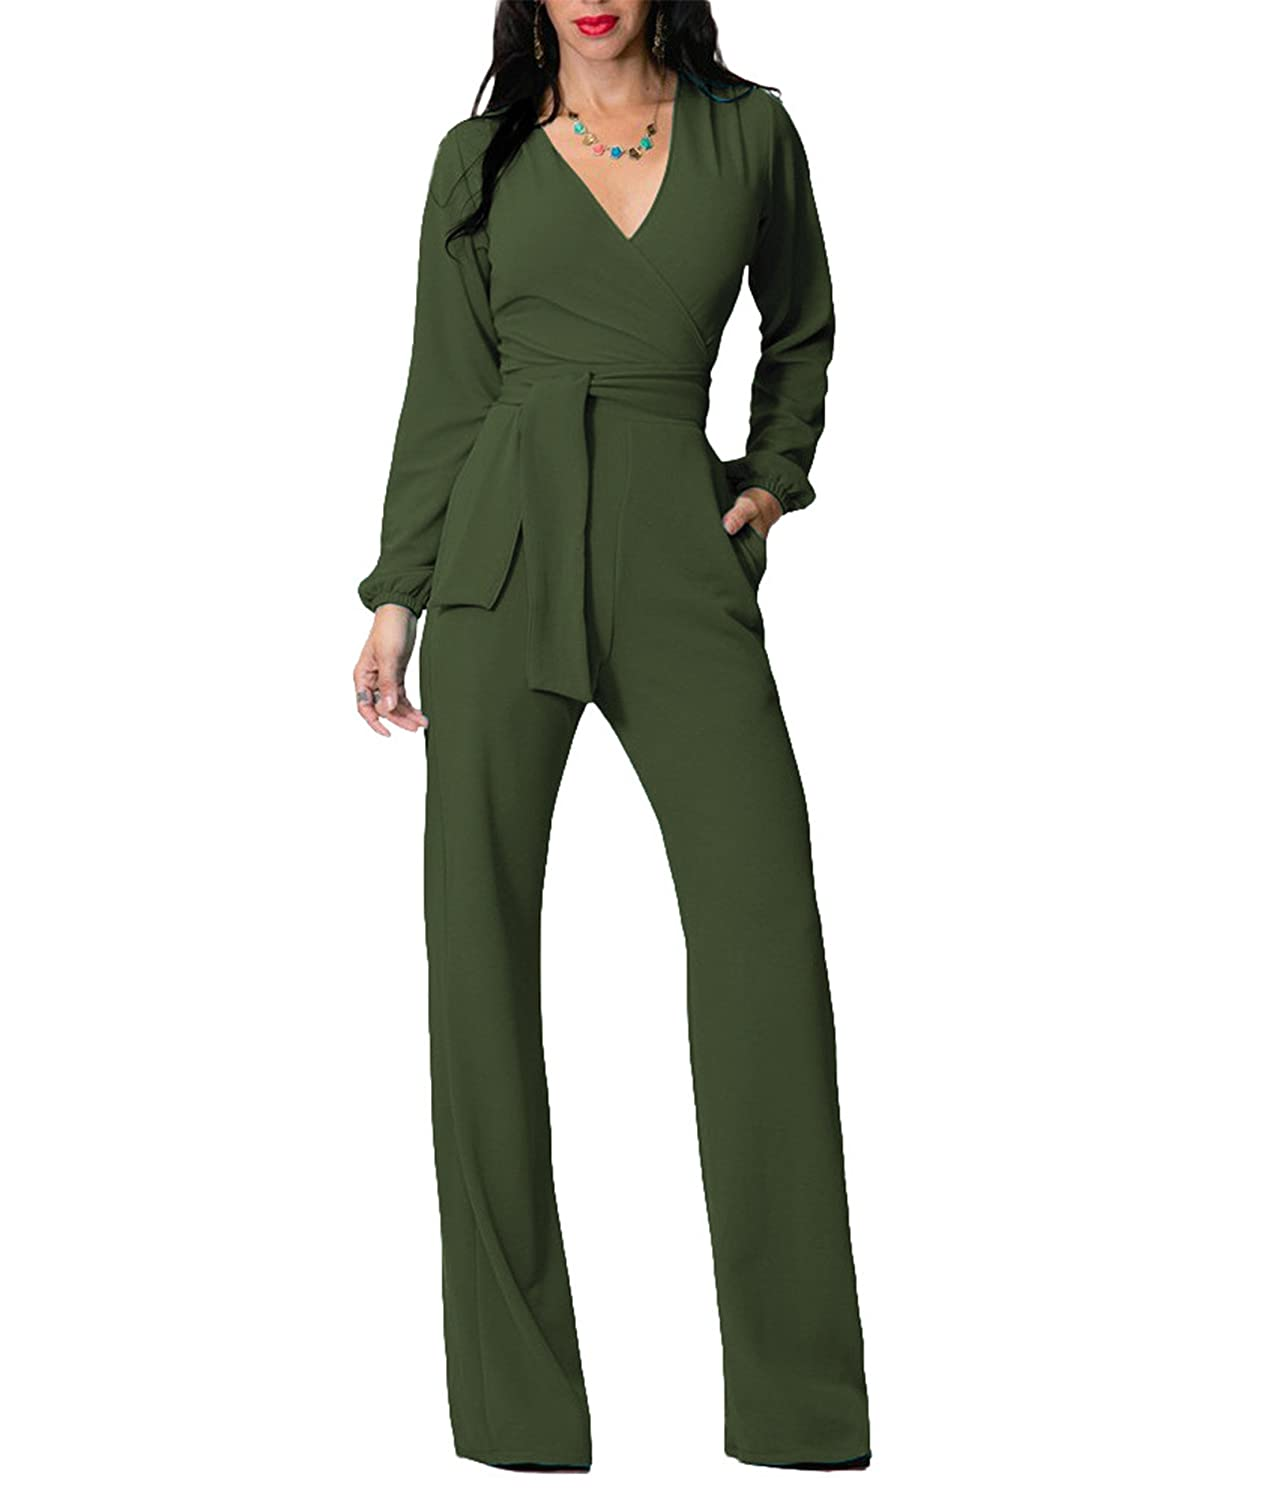 deebdd3fe4fc Amazon.com  IyMoo Women Black Sleeveless Playsuit Club Cocktail Jumpsuit  Romper Army Green Medium  Clothing